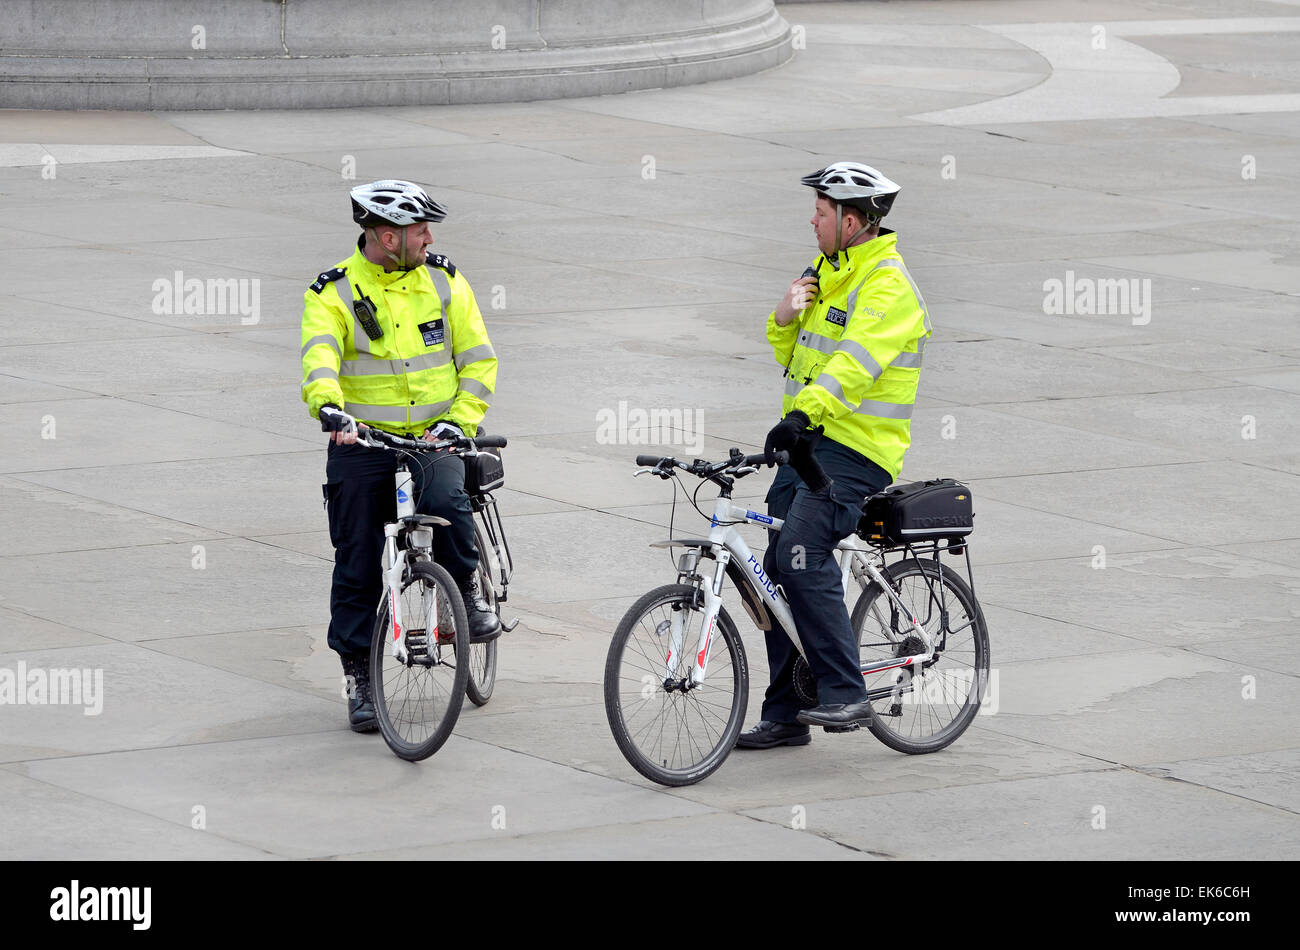 London, England, UK. Metropolitan police officers on bicycles in Trafalgar Square - Stock Image